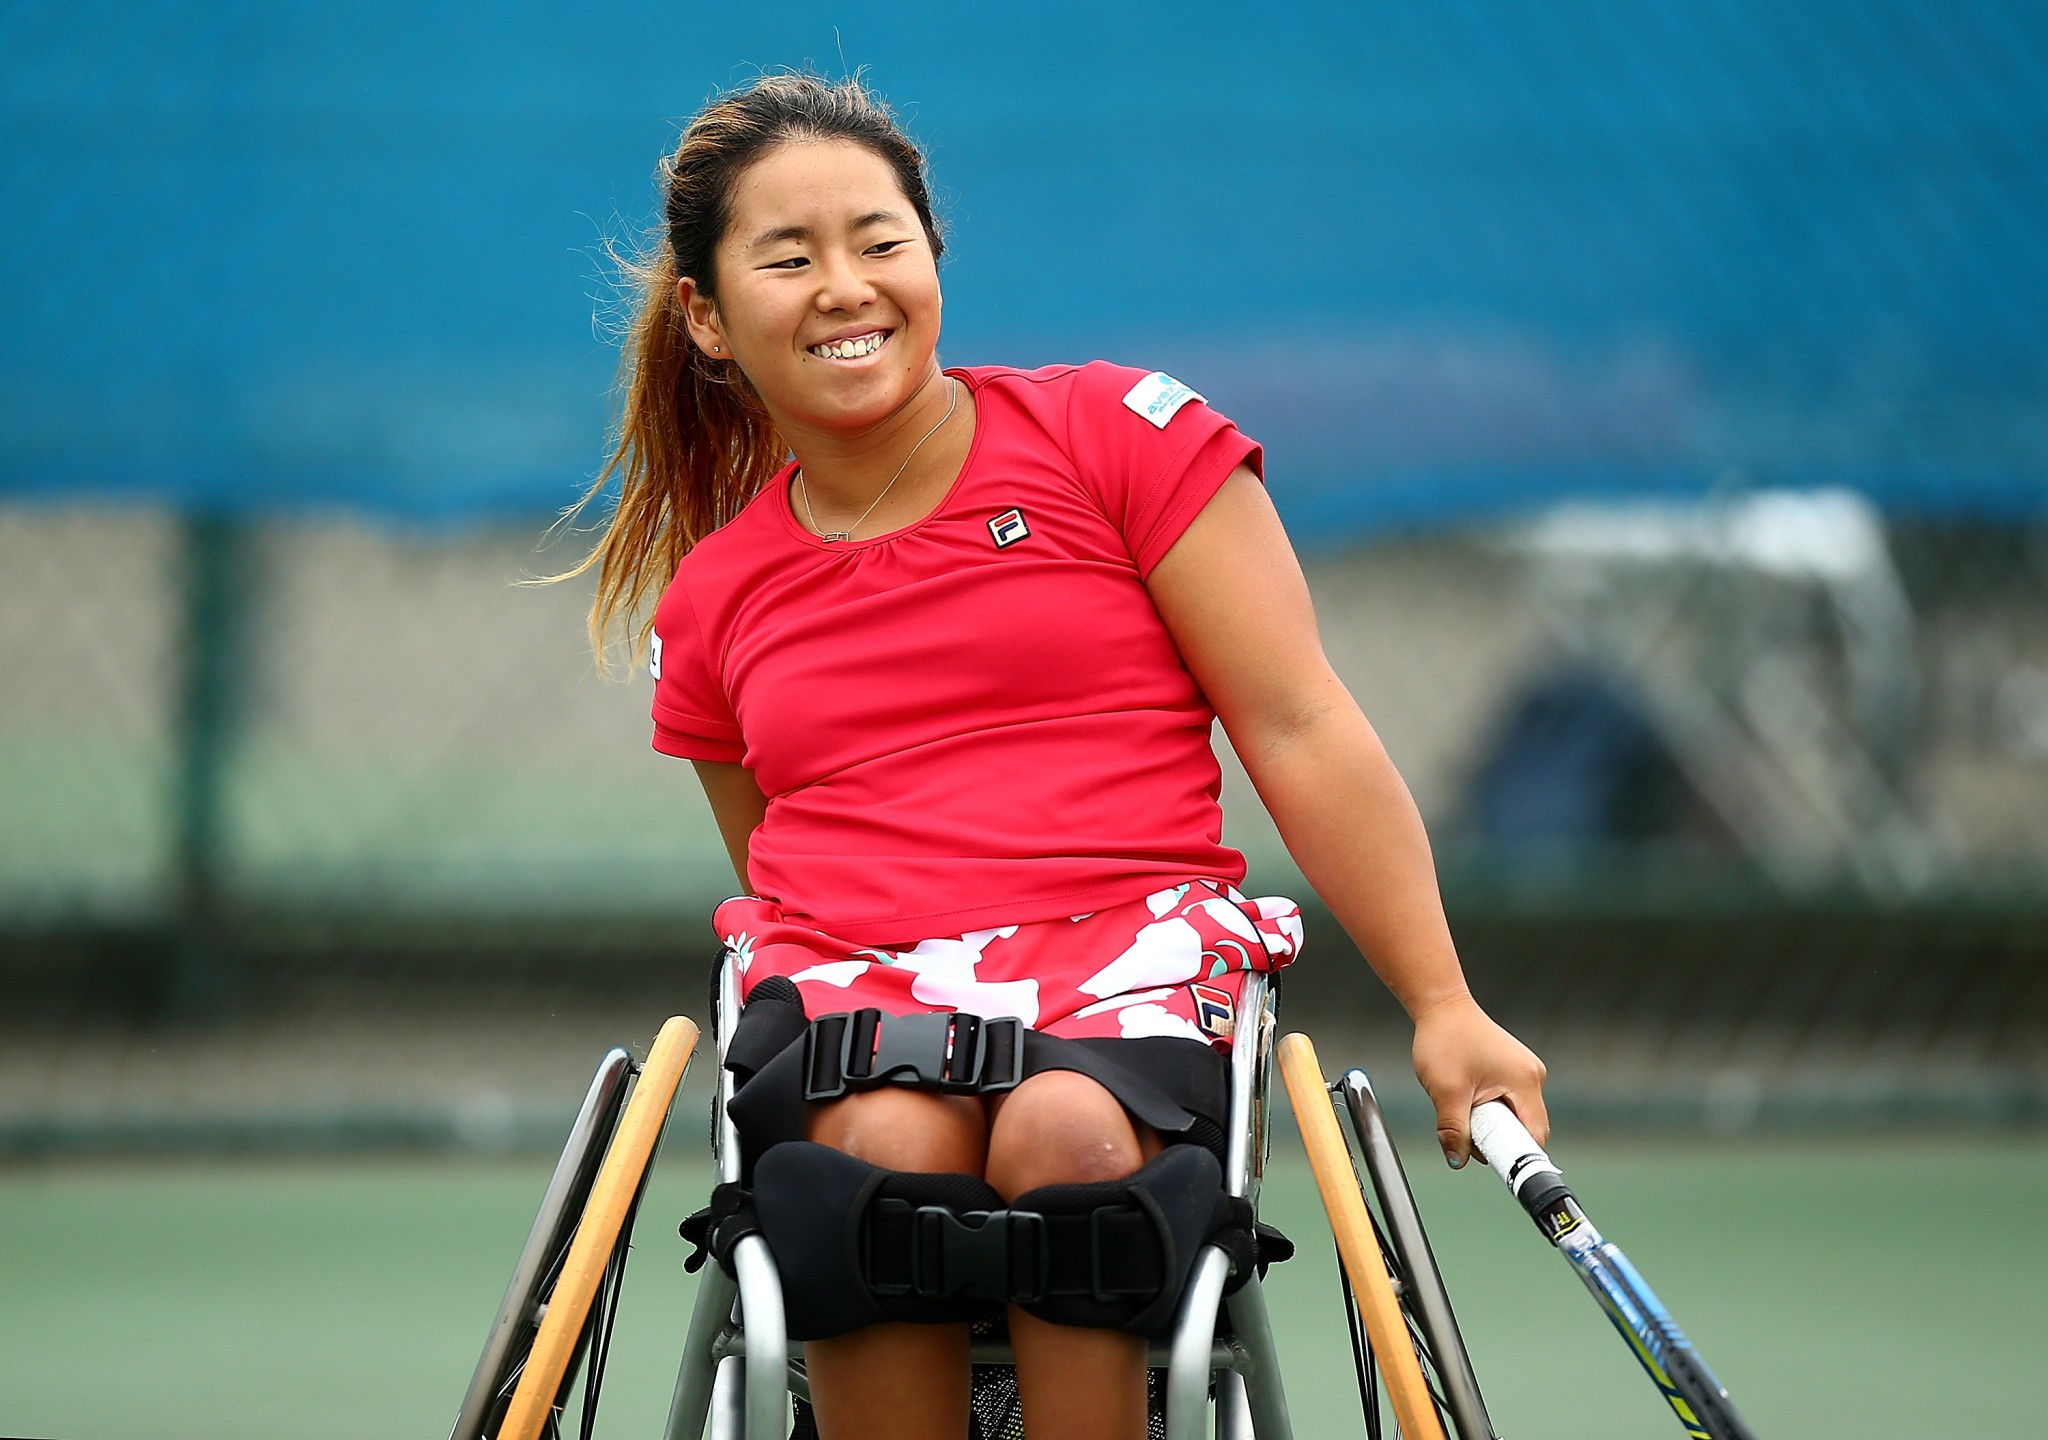 Japan's Yui Kamiji has also made the final in Nottingham ©Getty Images